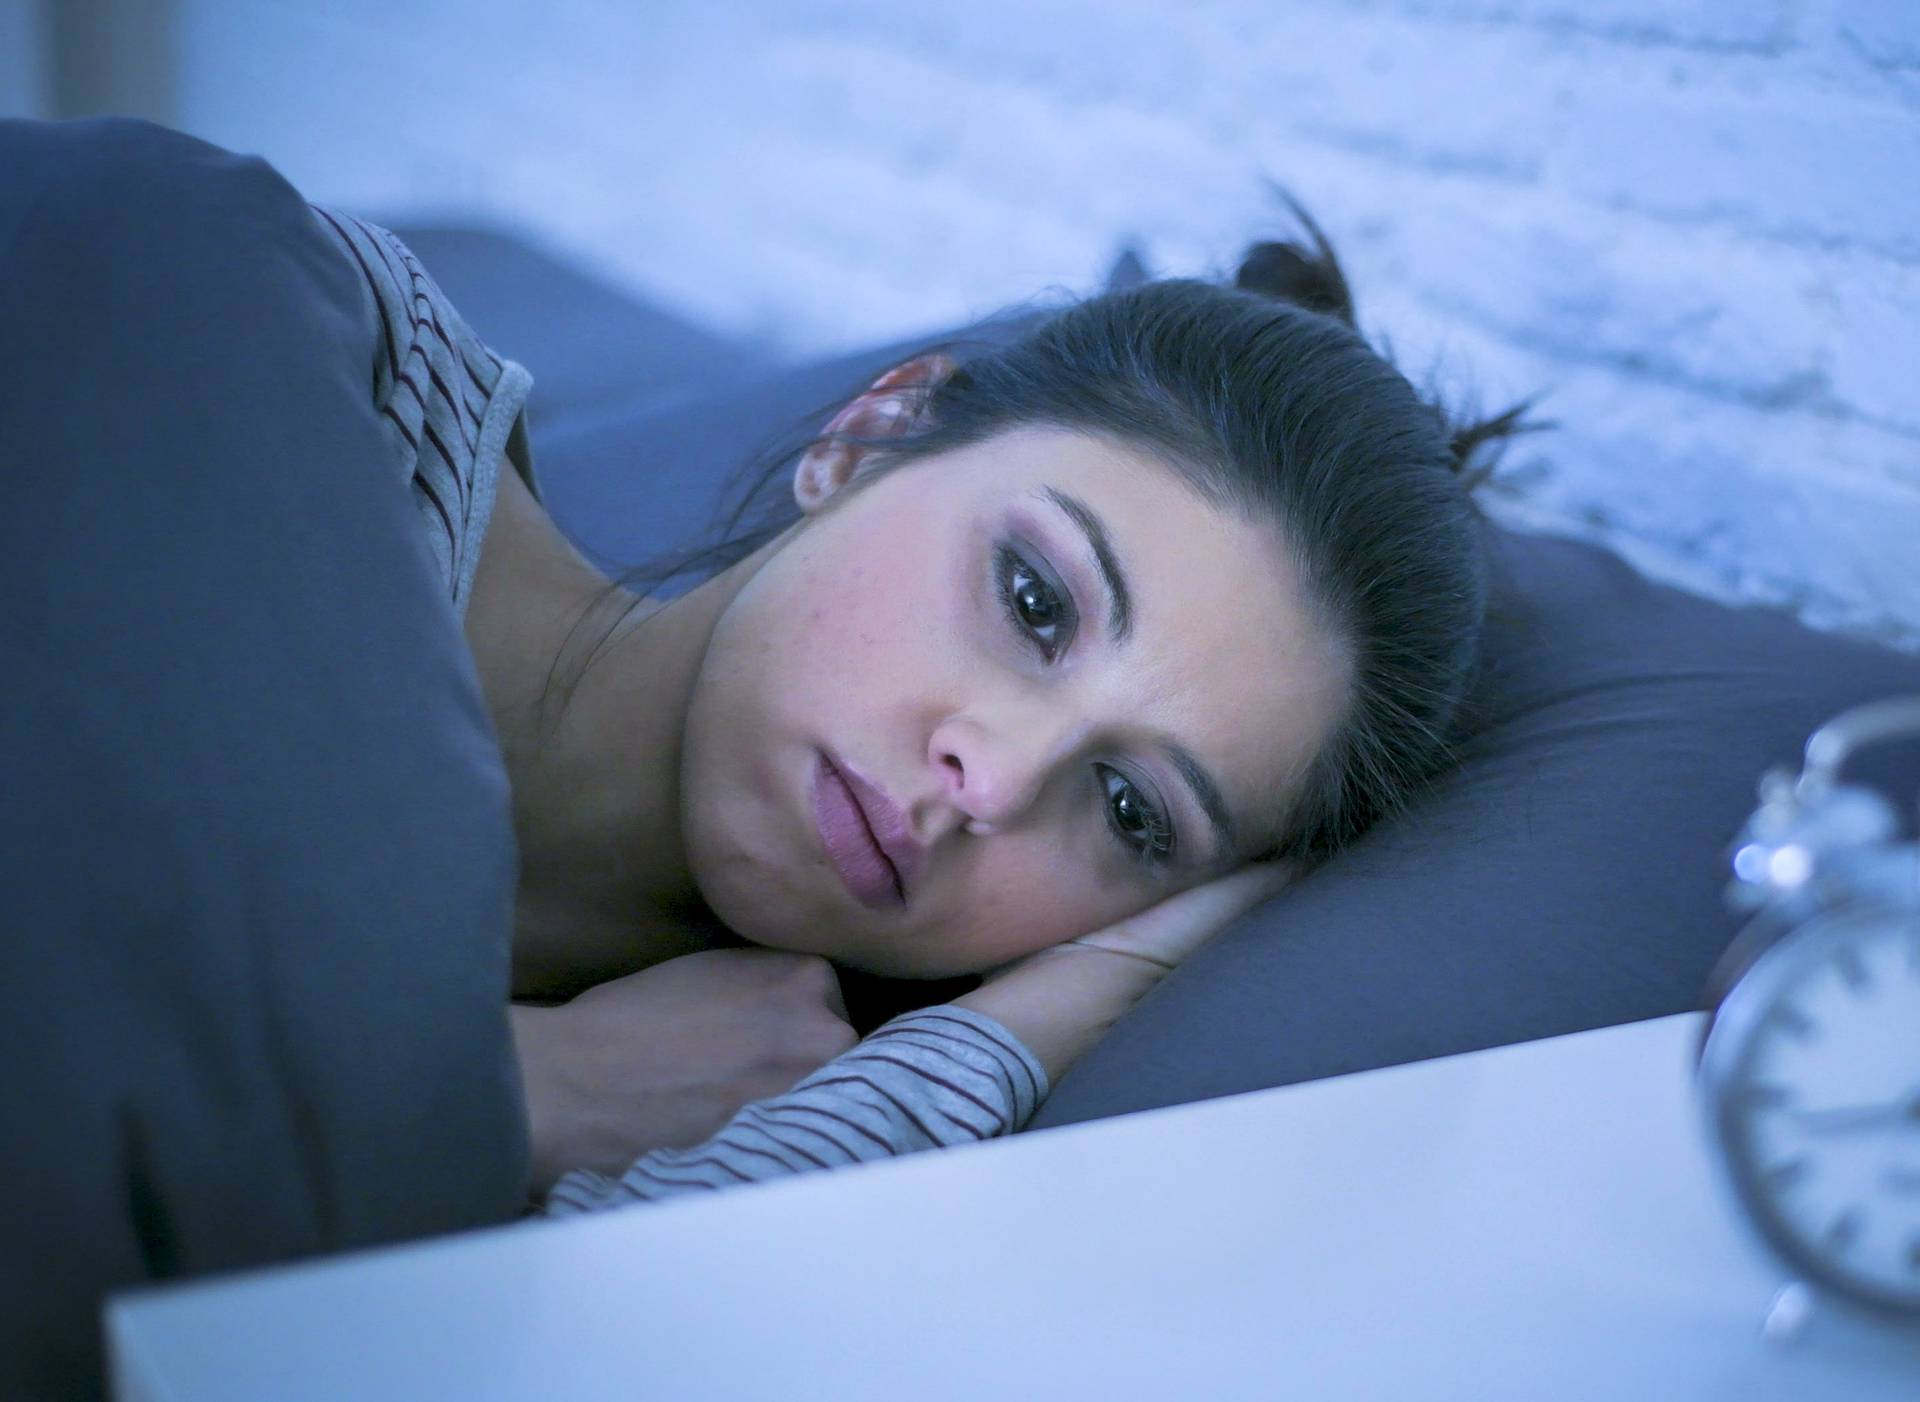 young beautiful sad and worried latin woman suffering insomnia and sleeping disorder problem unable to sleep late at night lying on bed awake